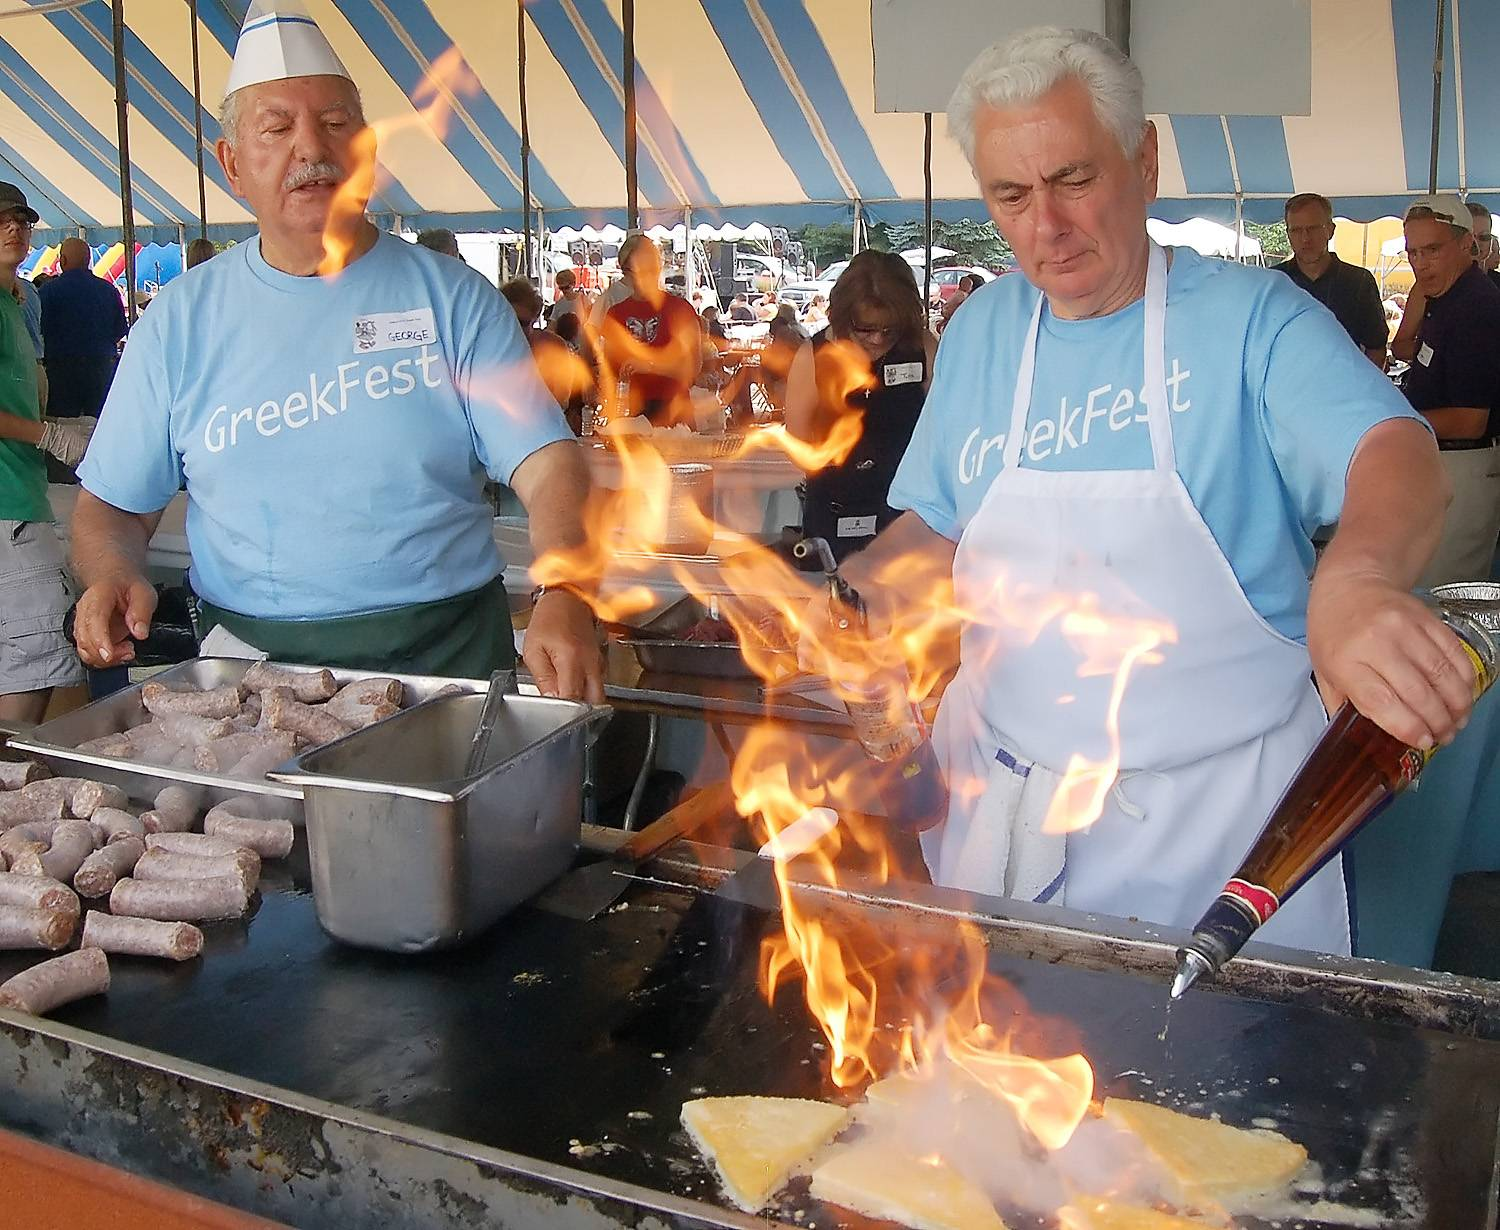 John Mathias puts the final touches on the Kelografeda flaming cheese while George Glitsohis cooks Greek sausage during a recent Greek Fest at St. Nectarios Church in Palatine. The three-day annual festival returns this weekend, featuring the best in Greek food, culture and music.